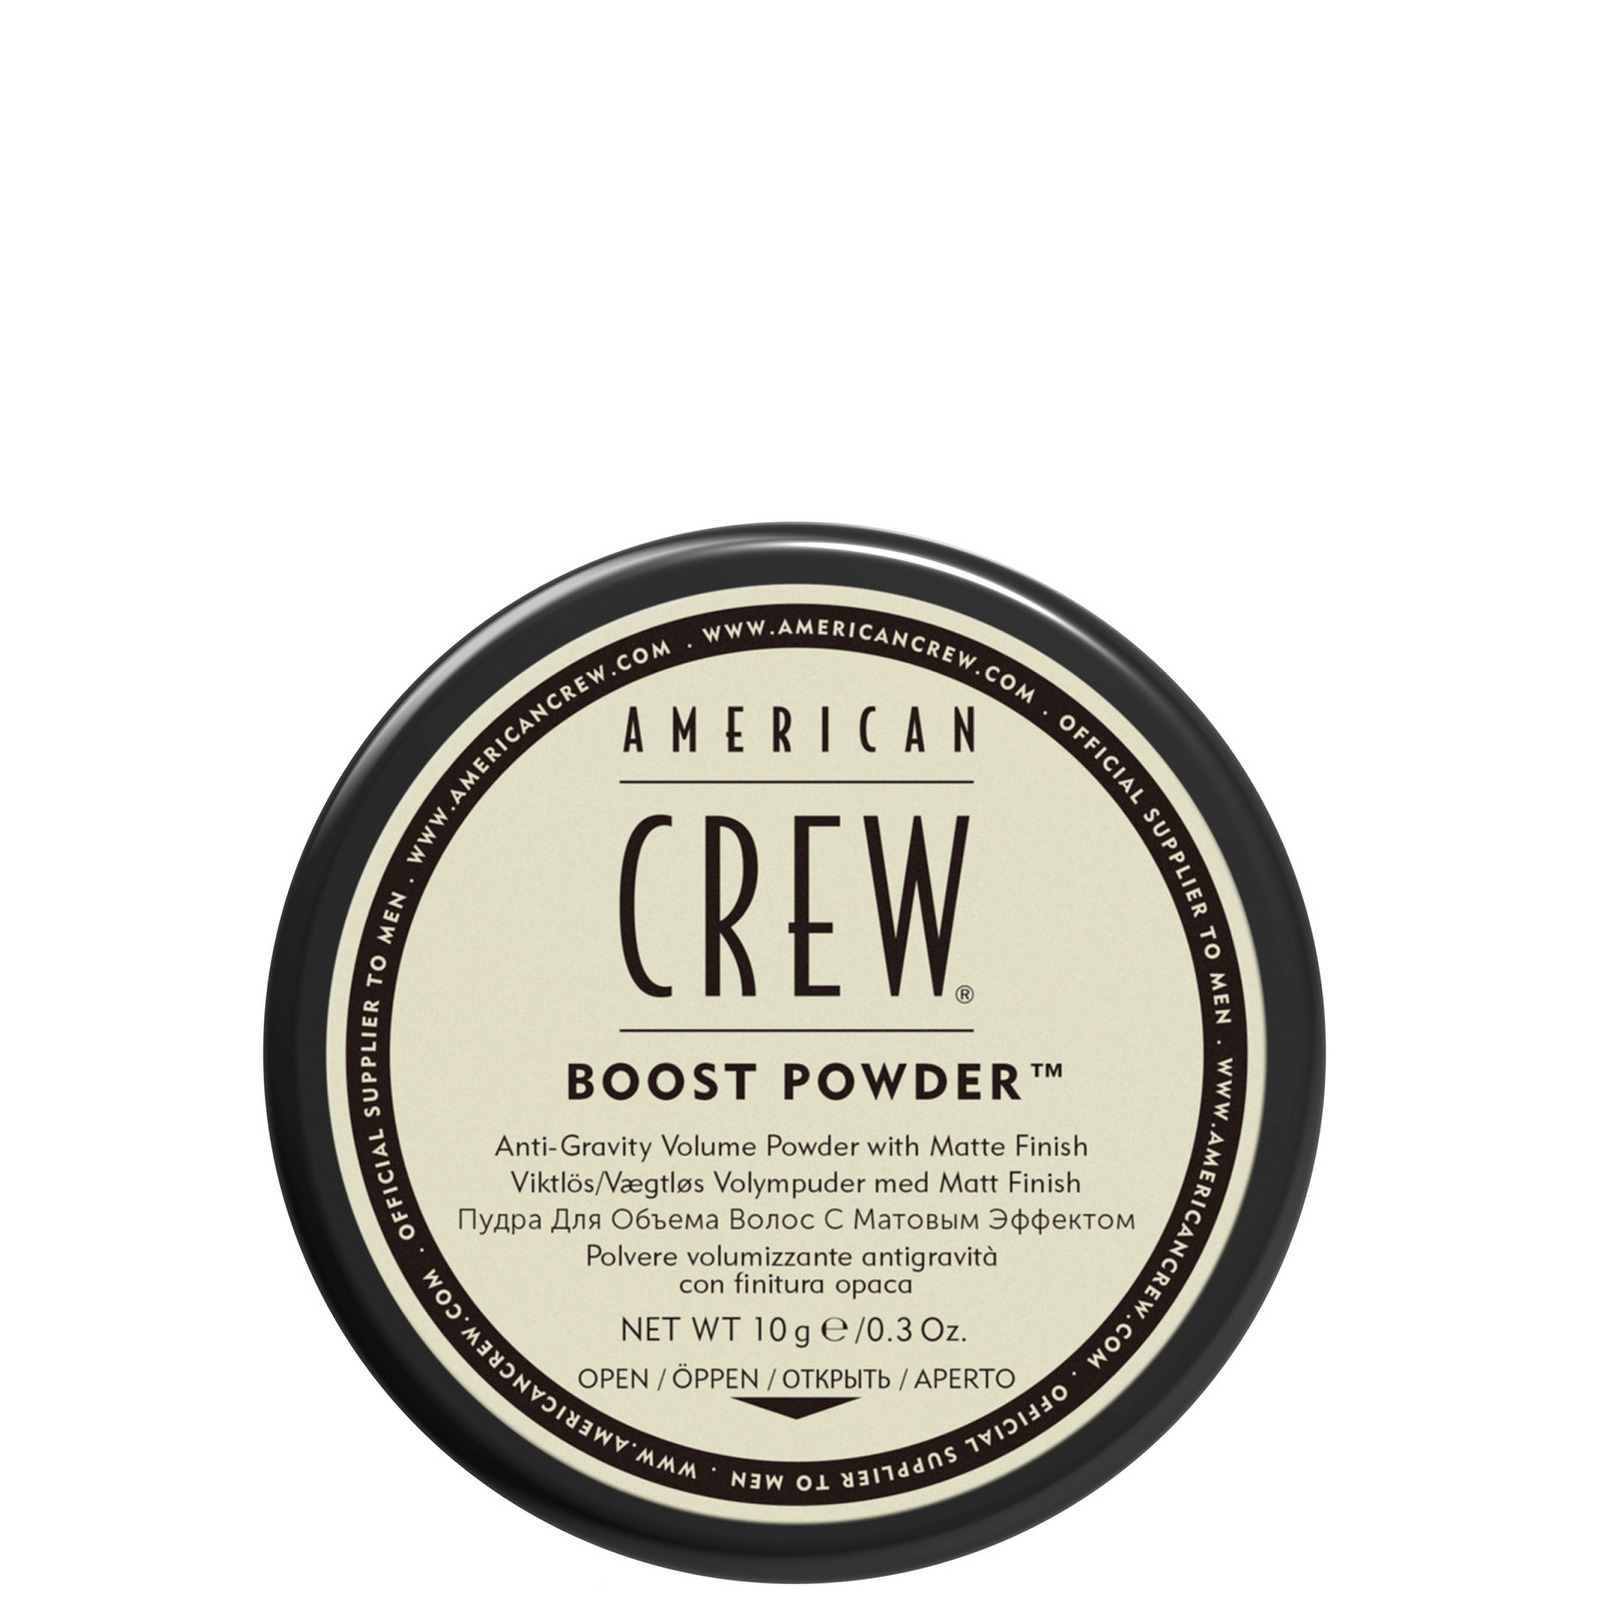 Image result for American Crew Boost Powder